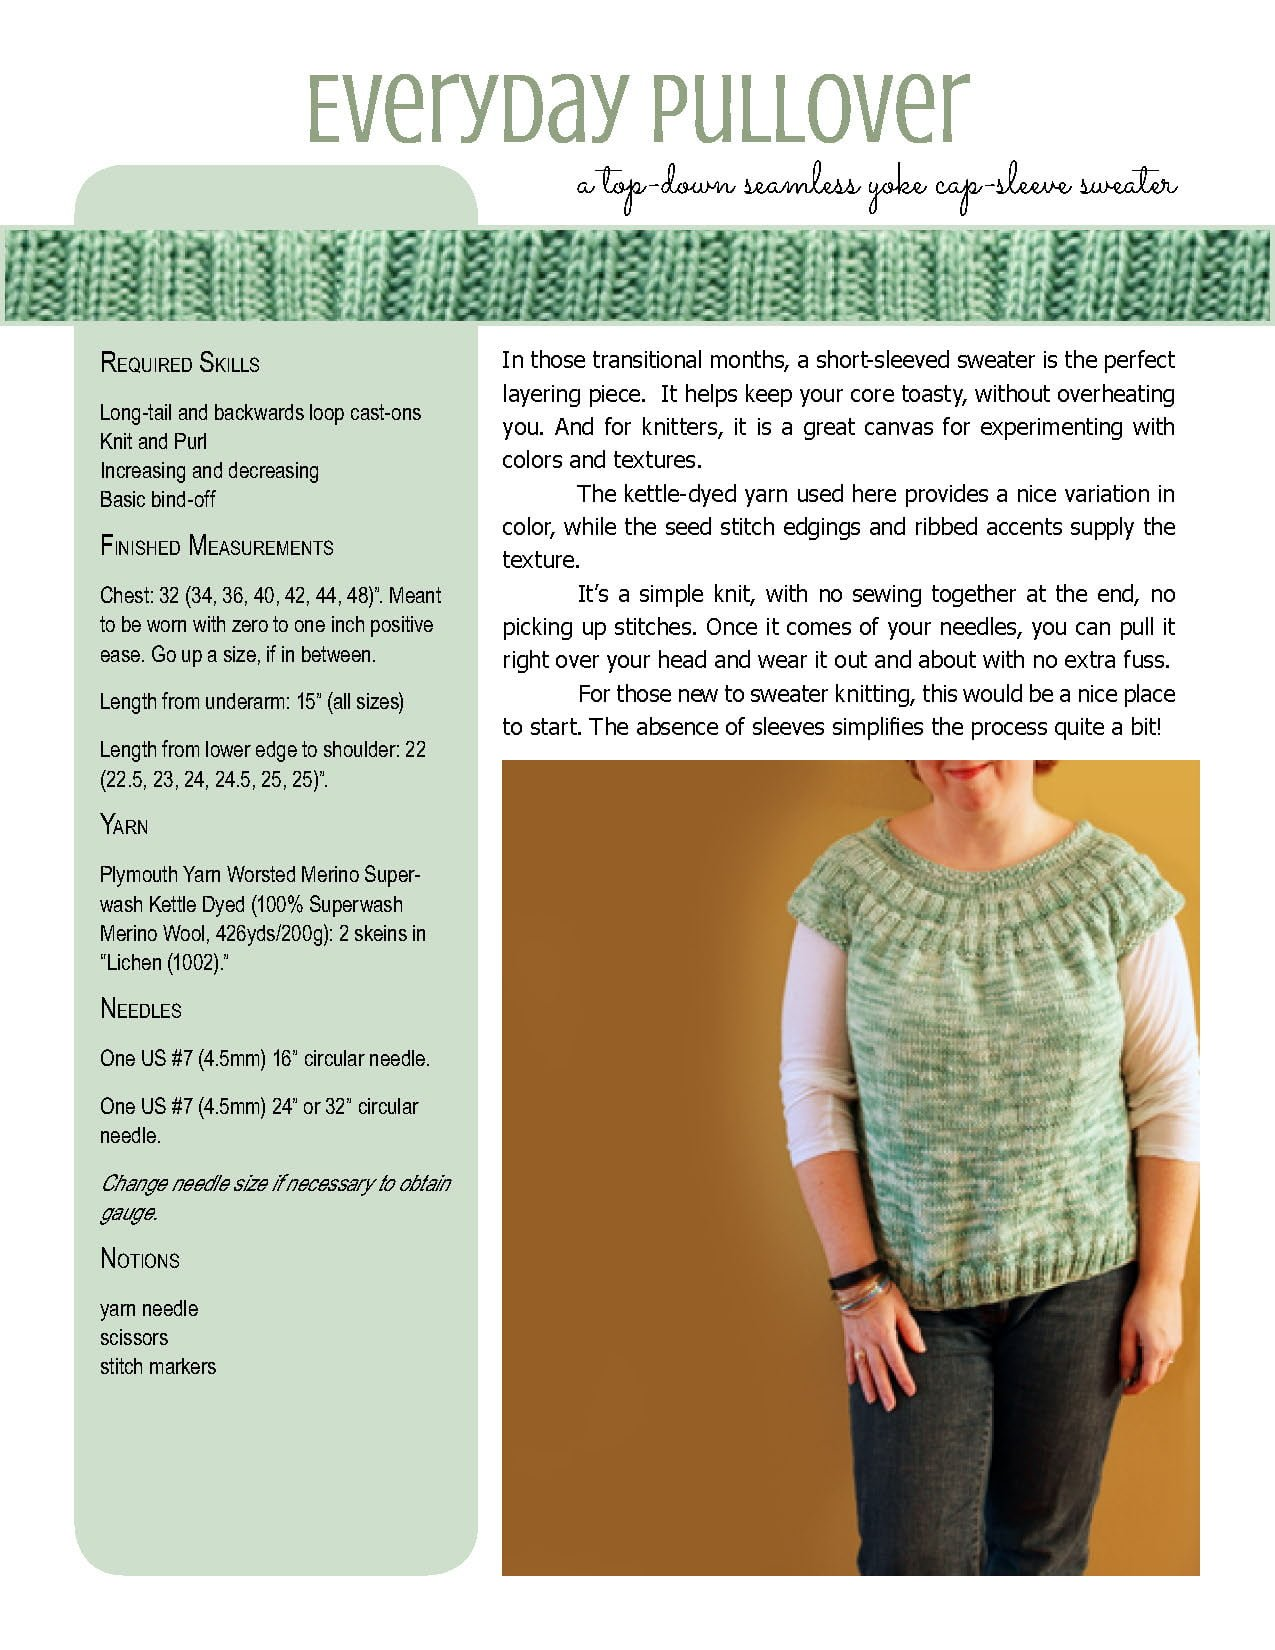 Everyday Pullover knitting pattern at Polka Dot Cottage